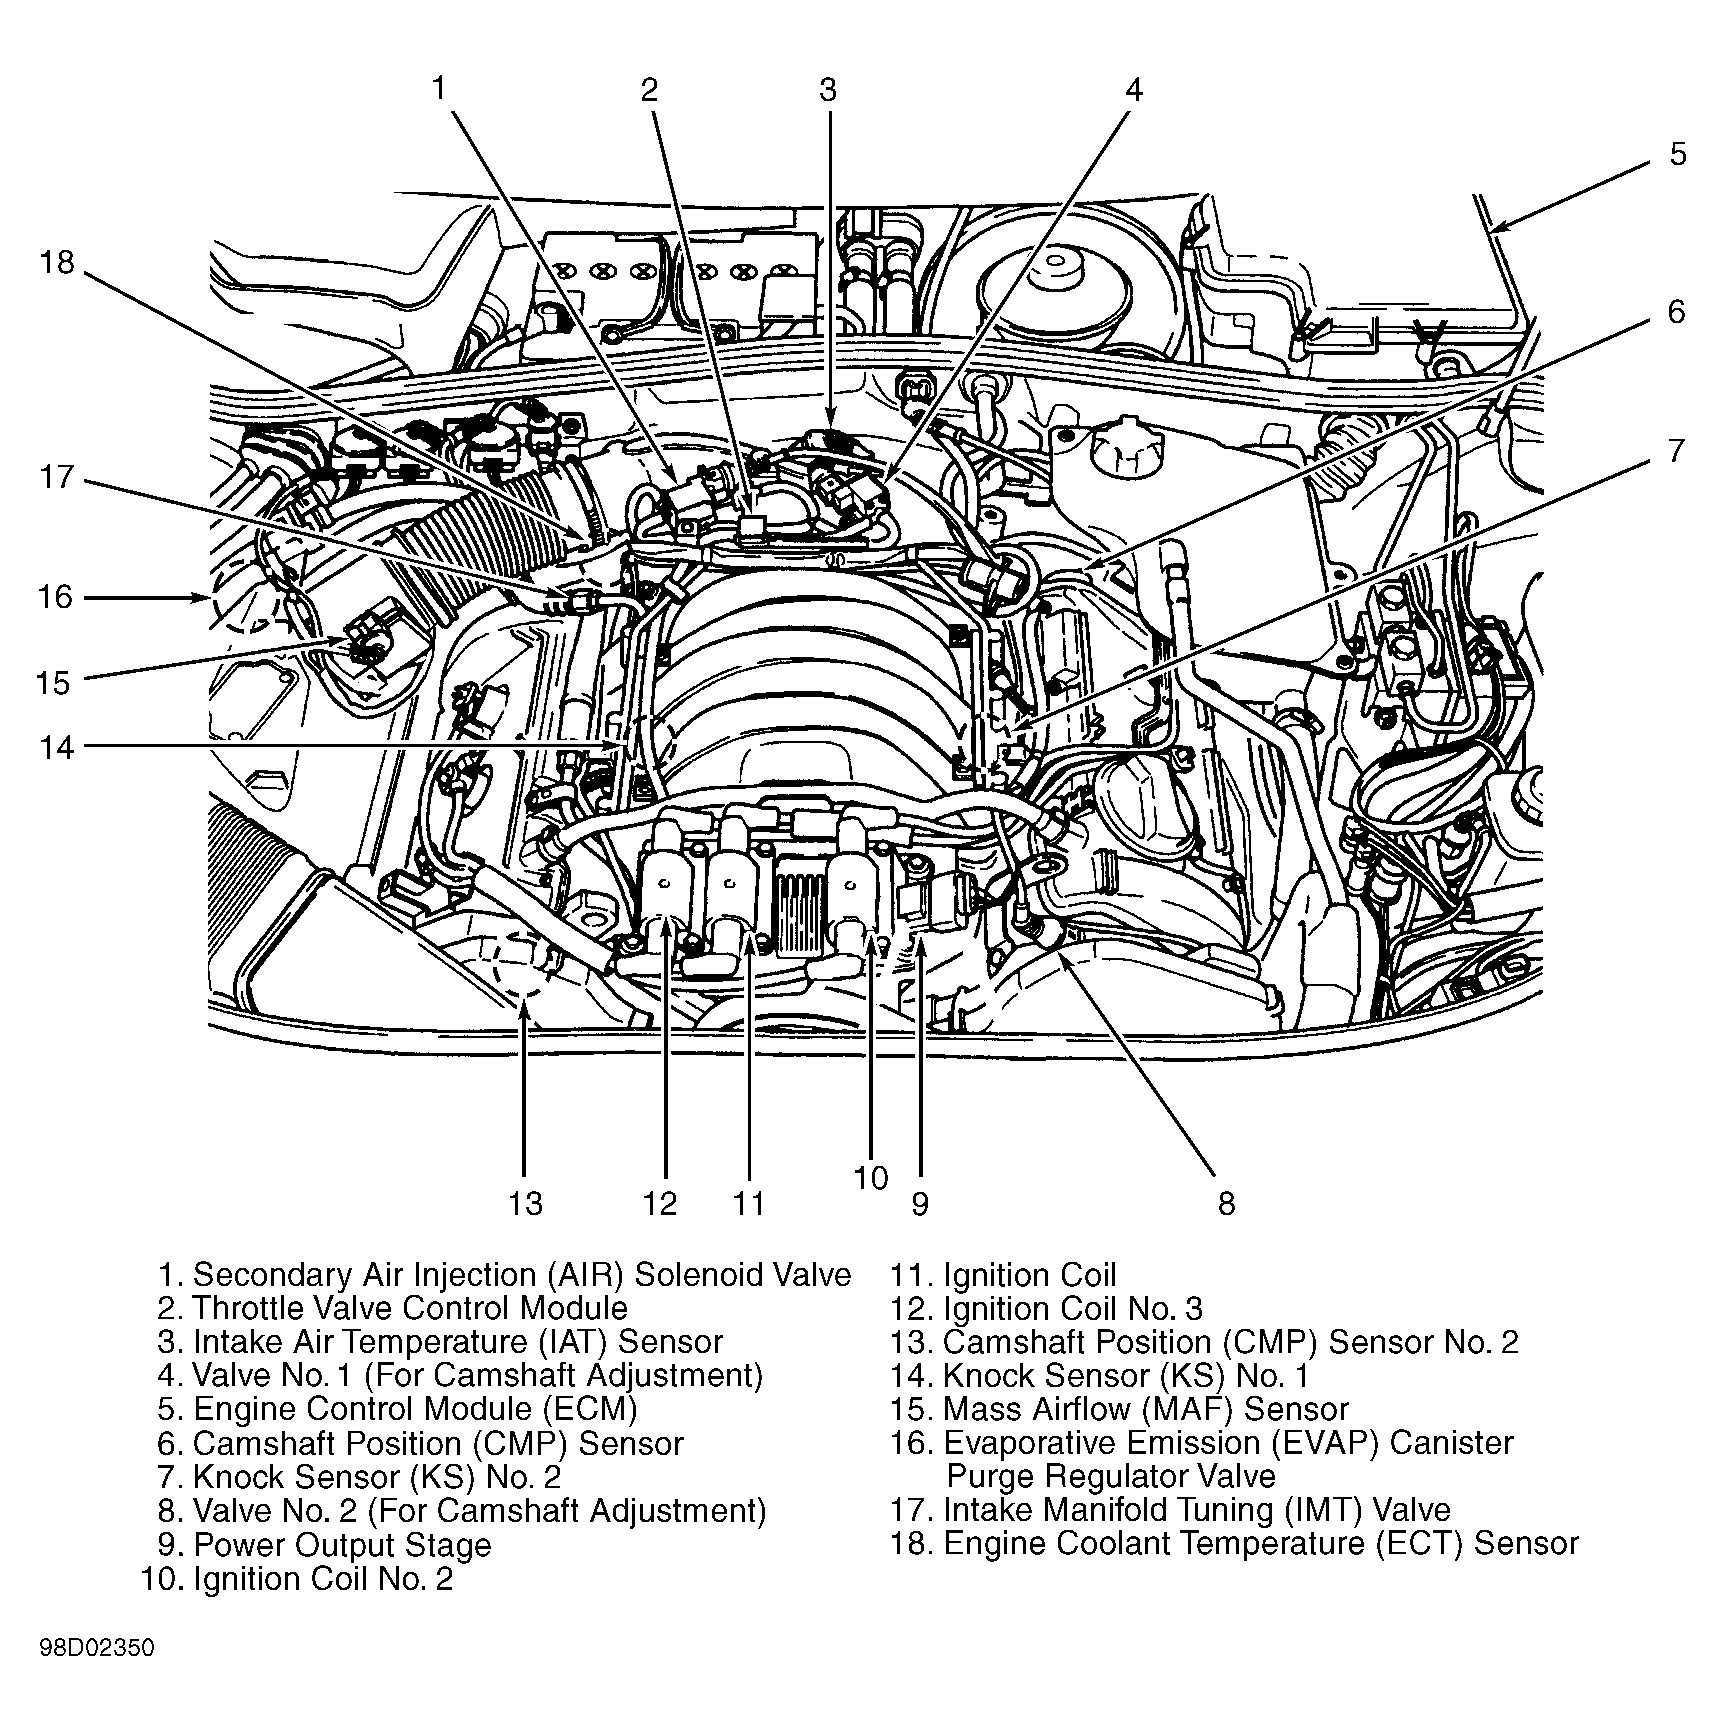 hight resolution of 1999 dodge intrepid 3 5 engine diagram free wiring diagram for you u2022 1995 dodge intrepid engine diagram 1999 dodge intrepid engine diagram